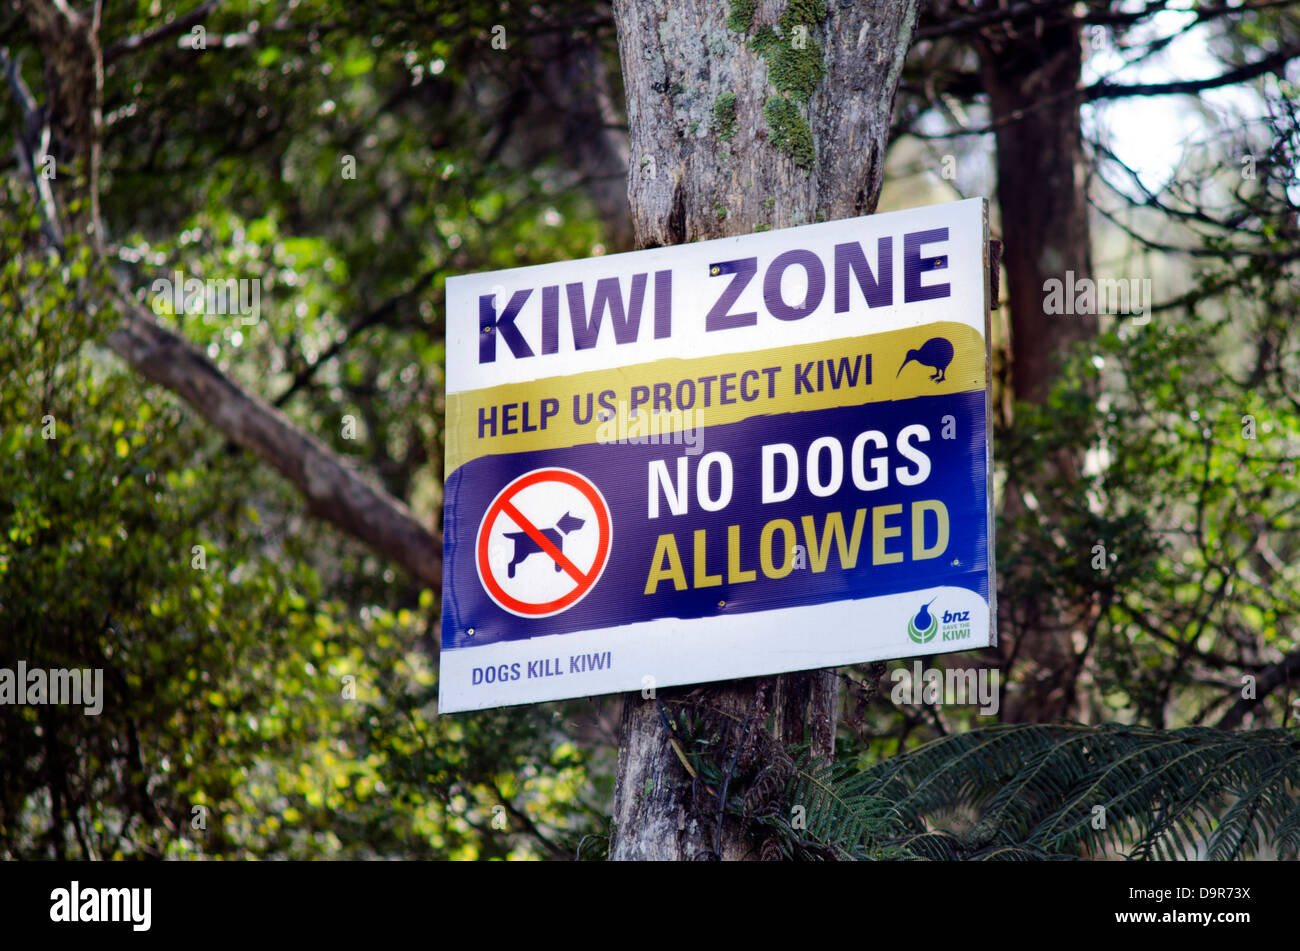 Kiwi zone sign in a rainforest in New Zealand - Stock Image